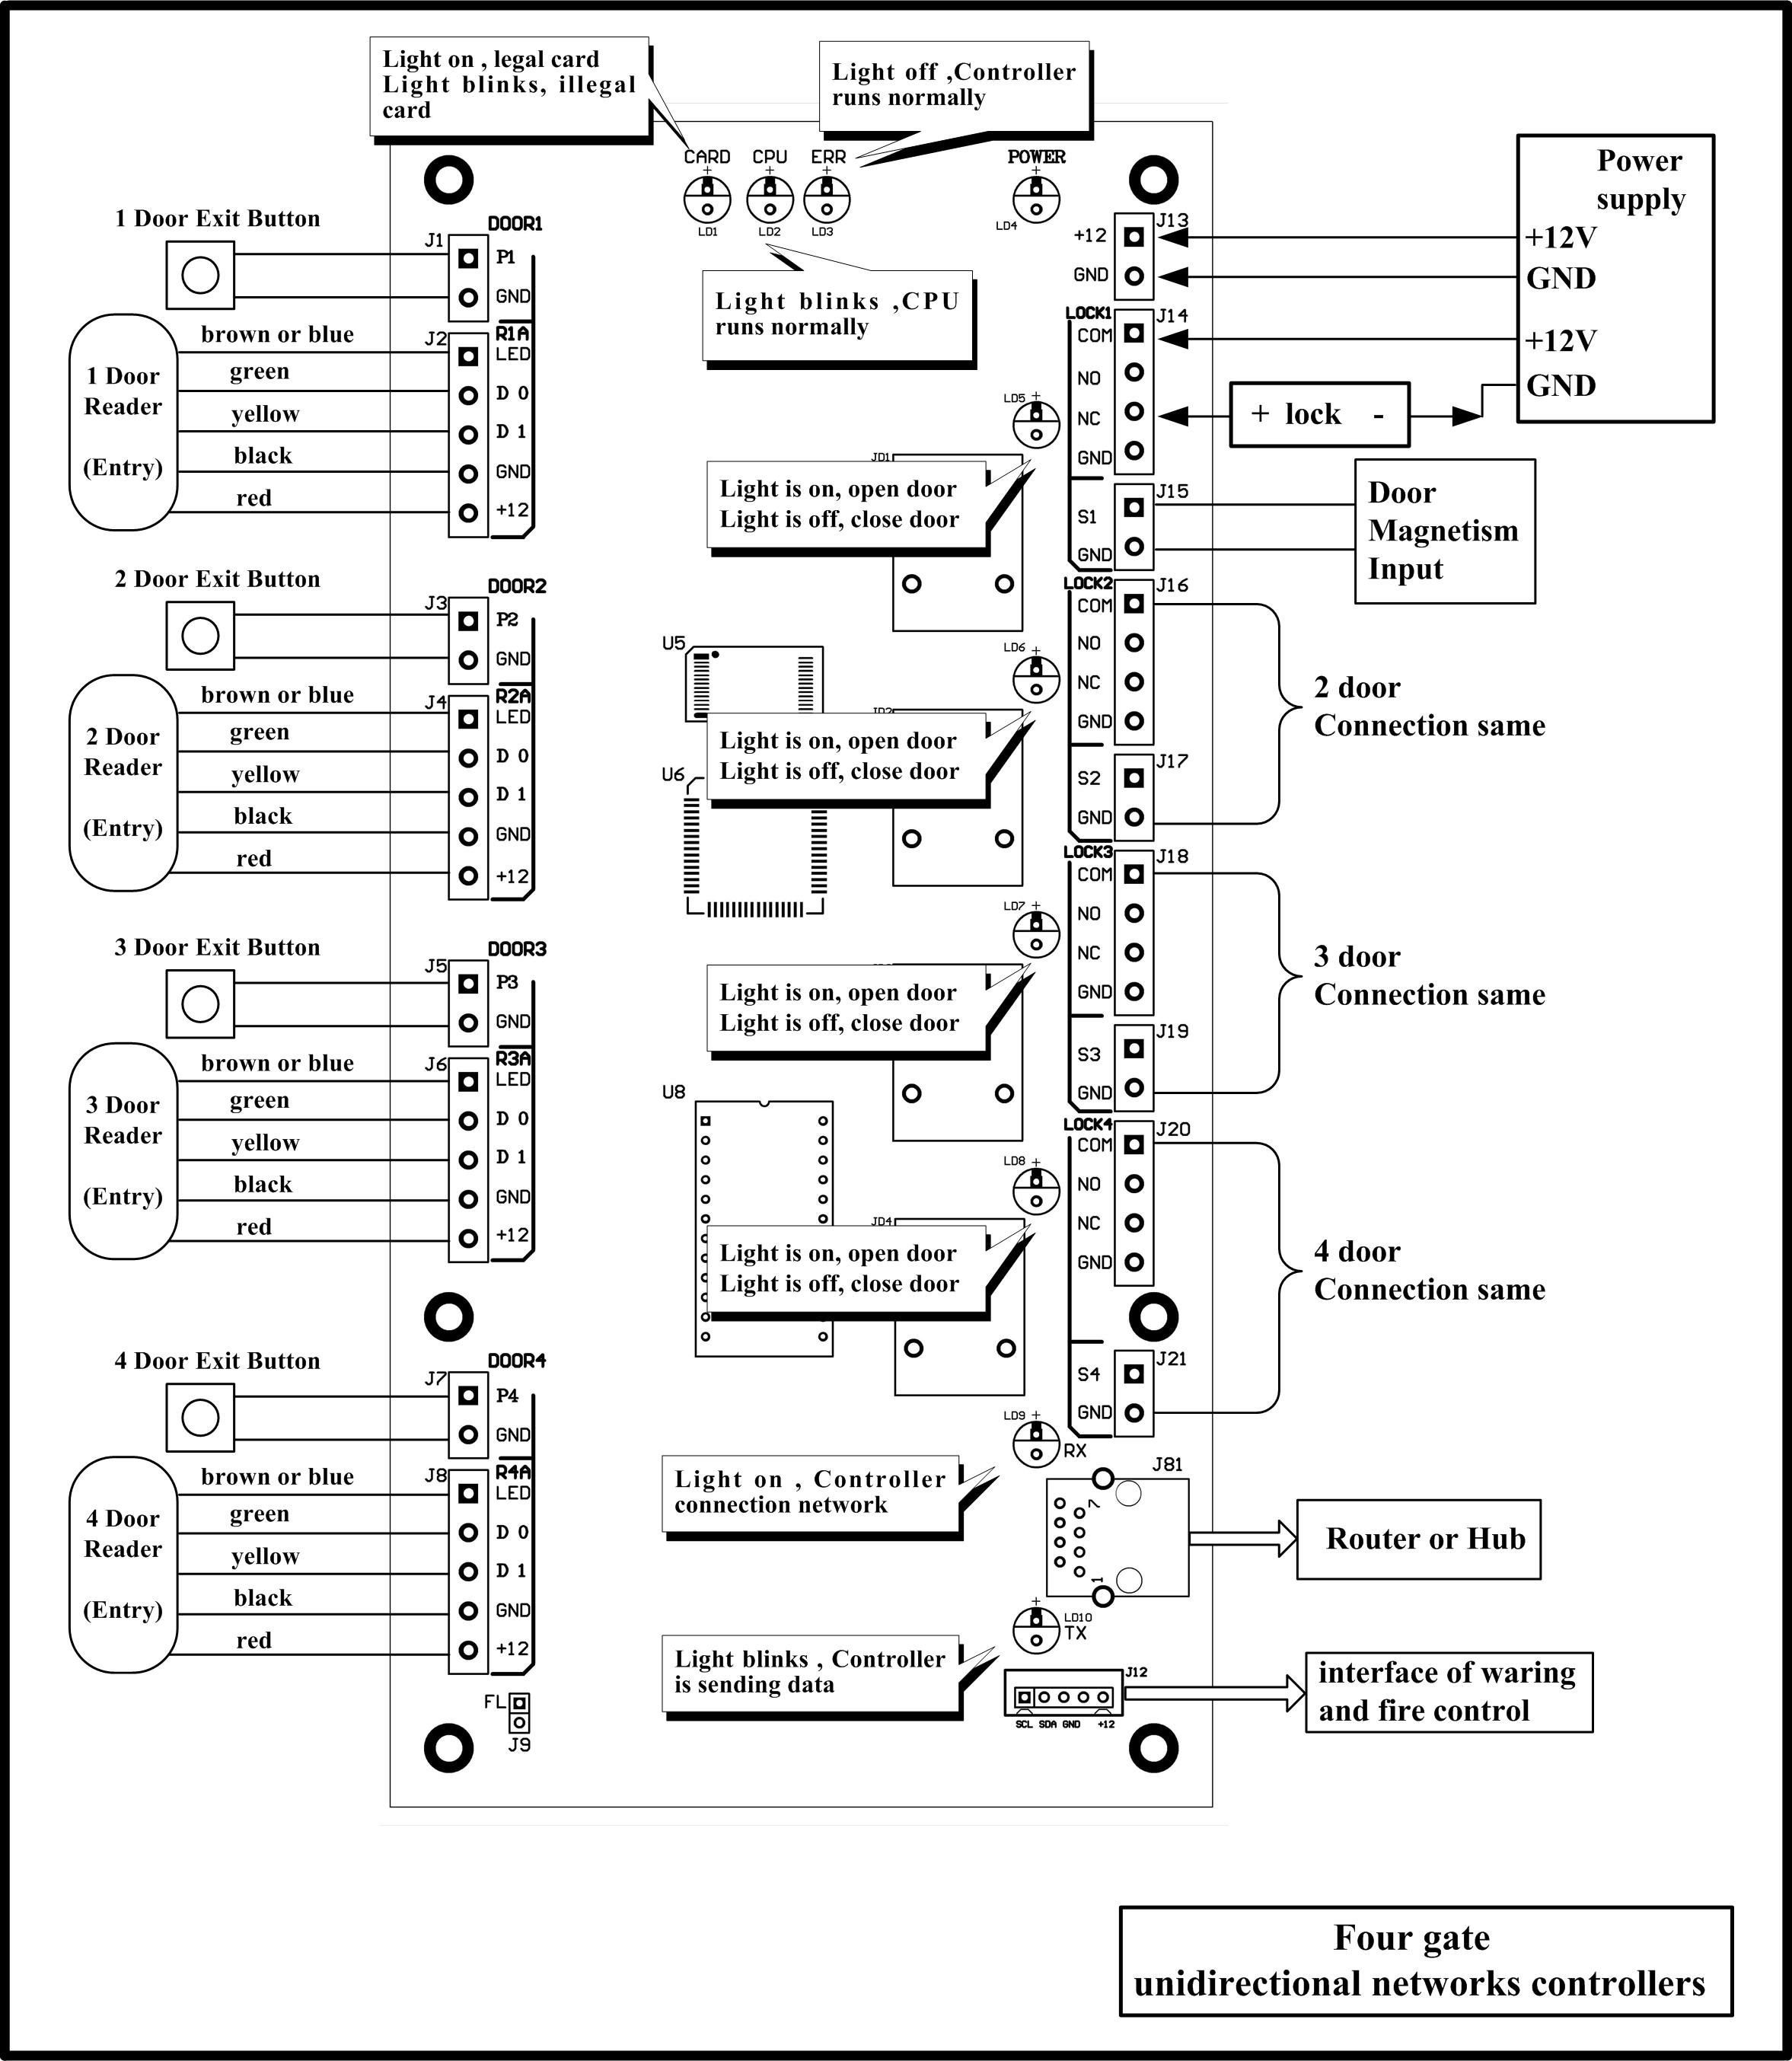 lenel access control wiring diagram Download-Door Access Control System Wiring Diagram To 531 Bright With Lenel Lenel 2220 Wiring Diagram 15-d